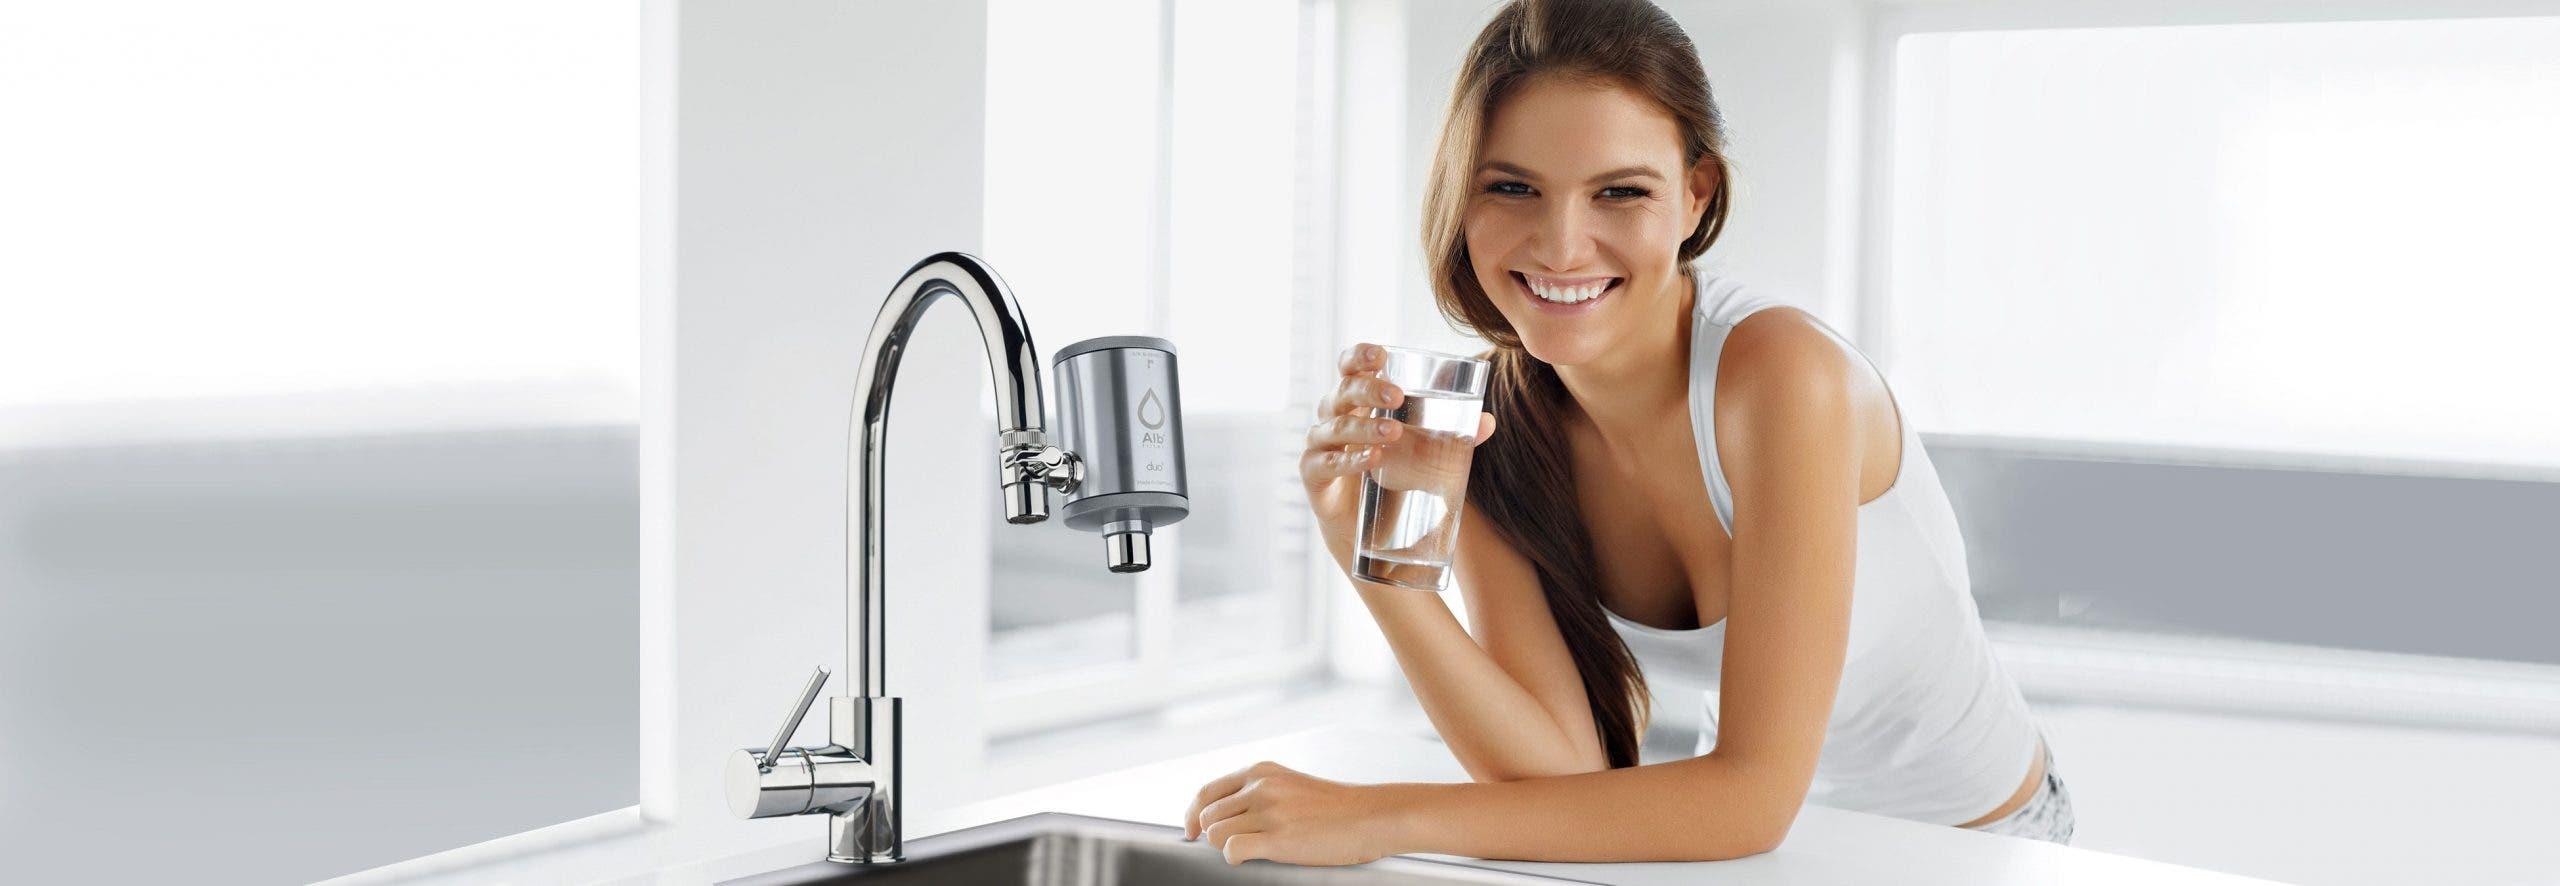 Eco Puro Plastic Free High Quality Water Filter System Spain